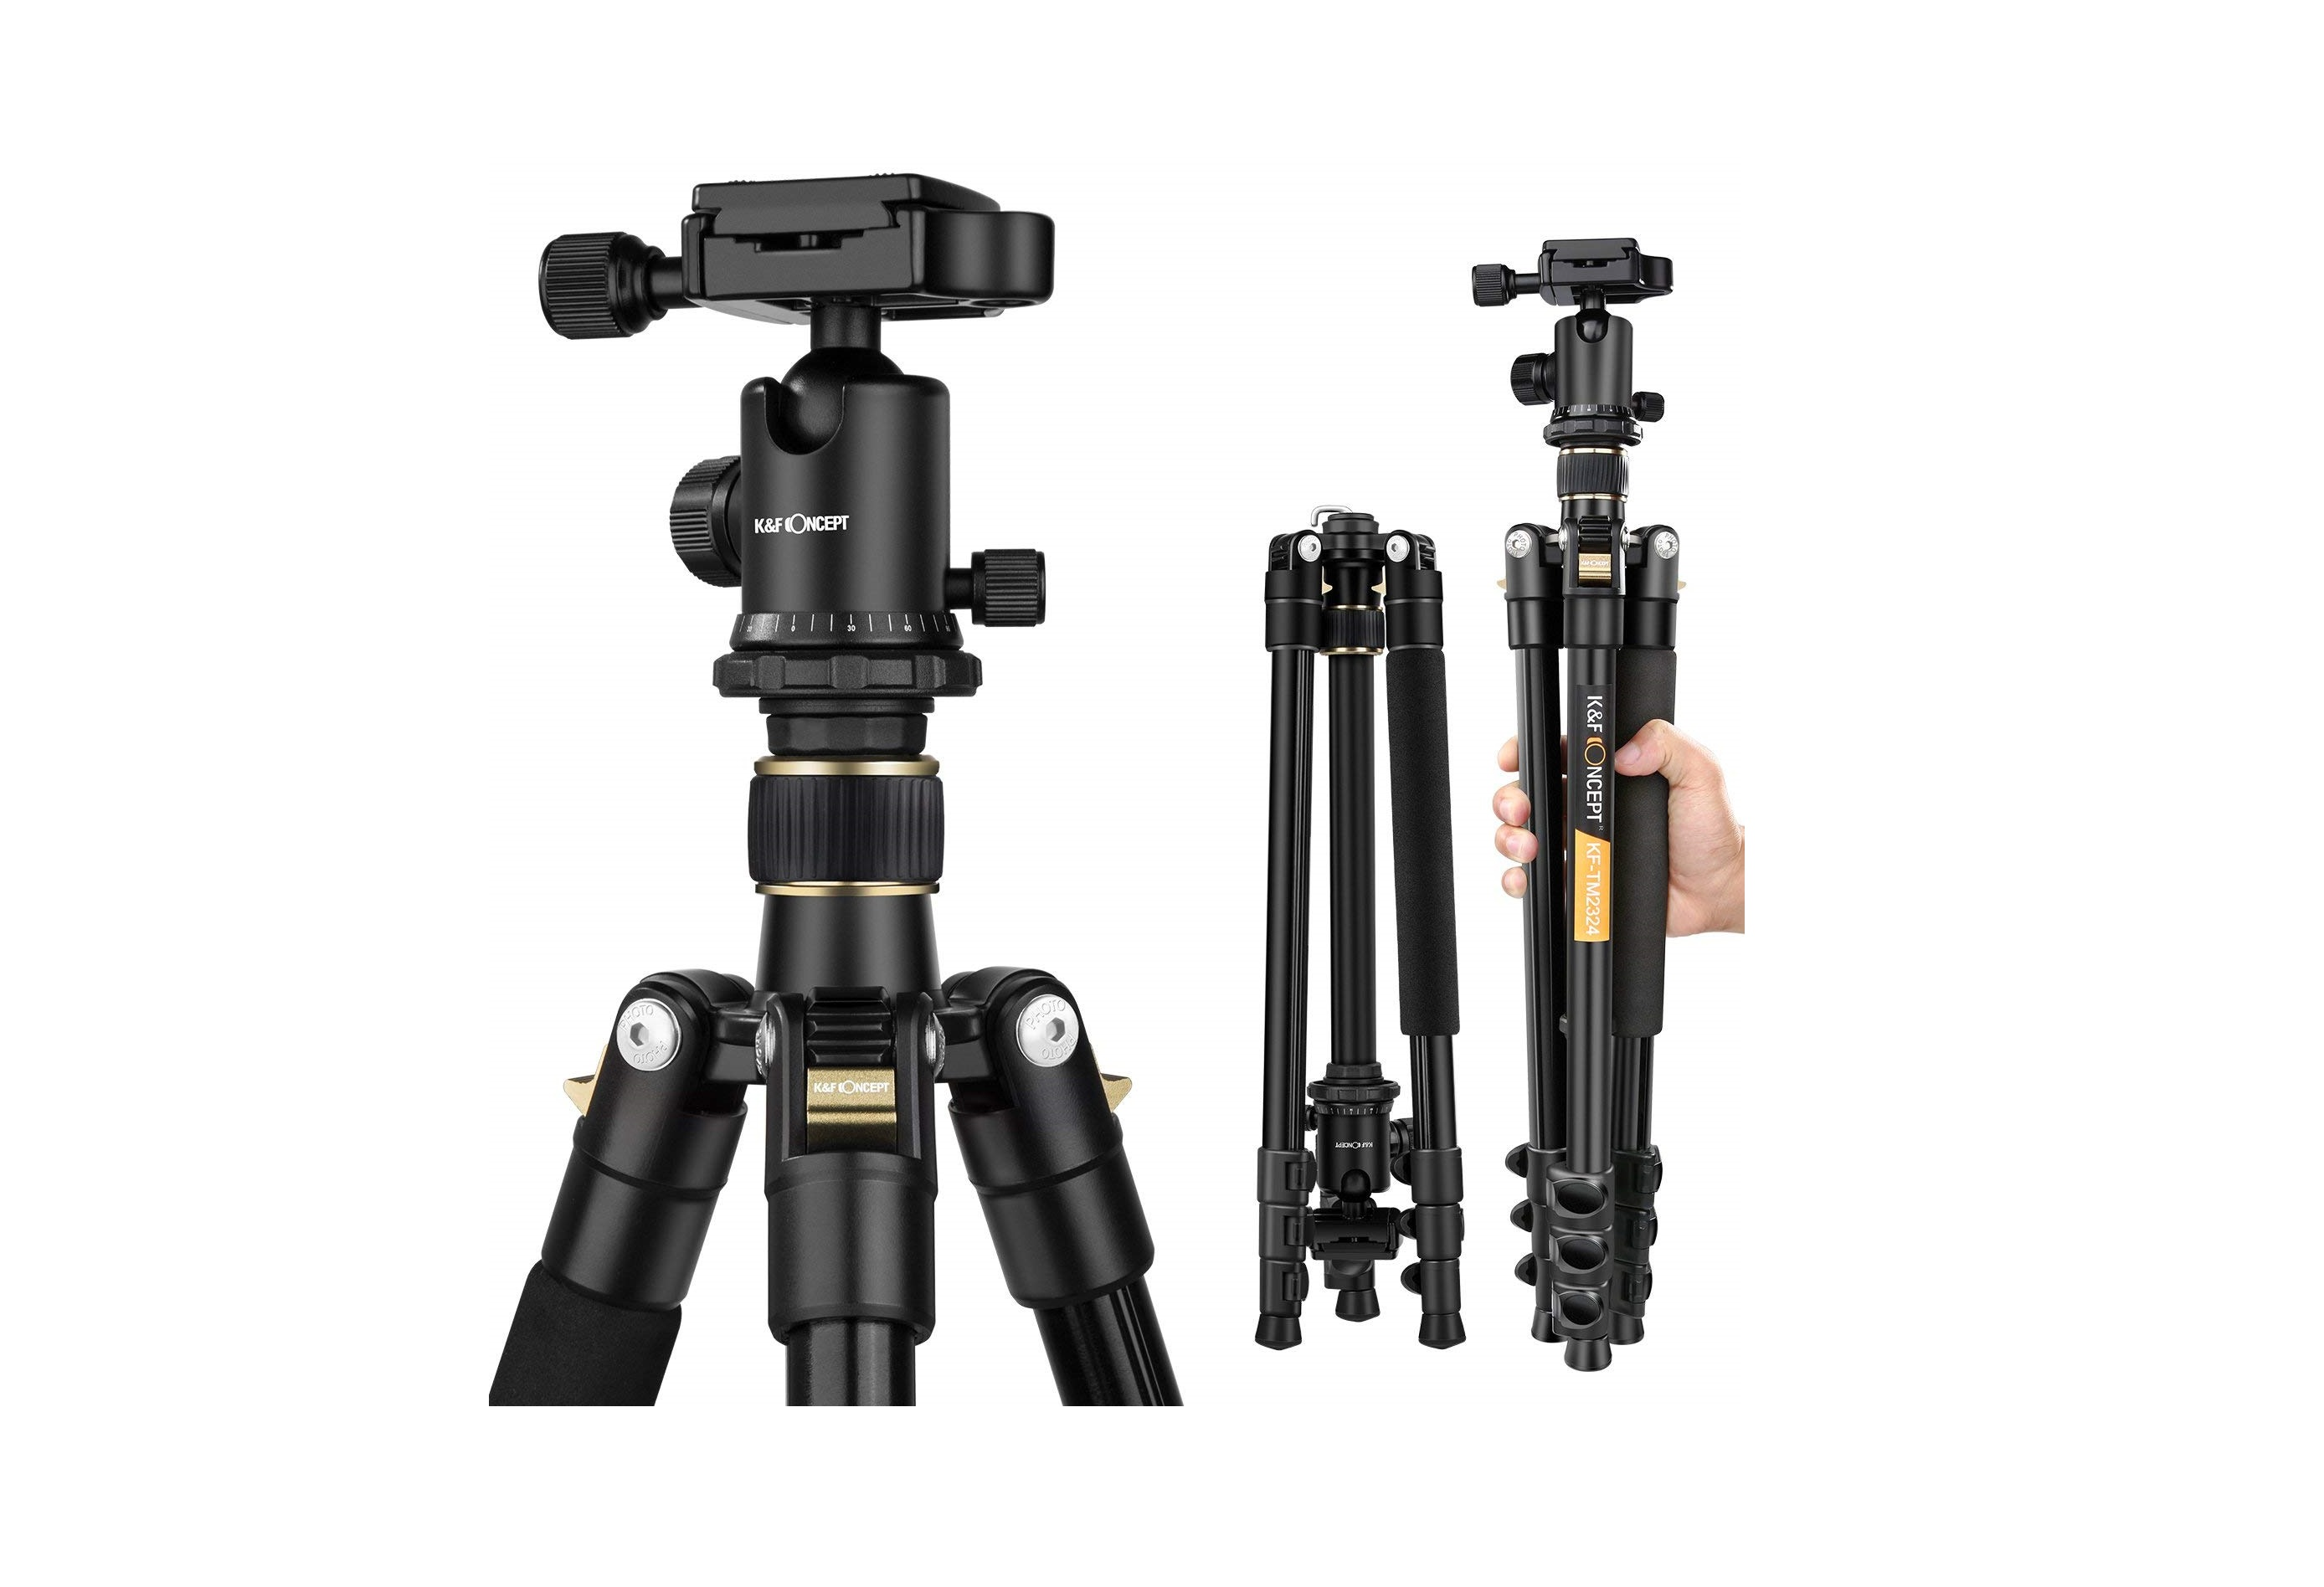 TOP 5 BEST TRIPOD UNDER 100$ IN 2020 REVIEWS